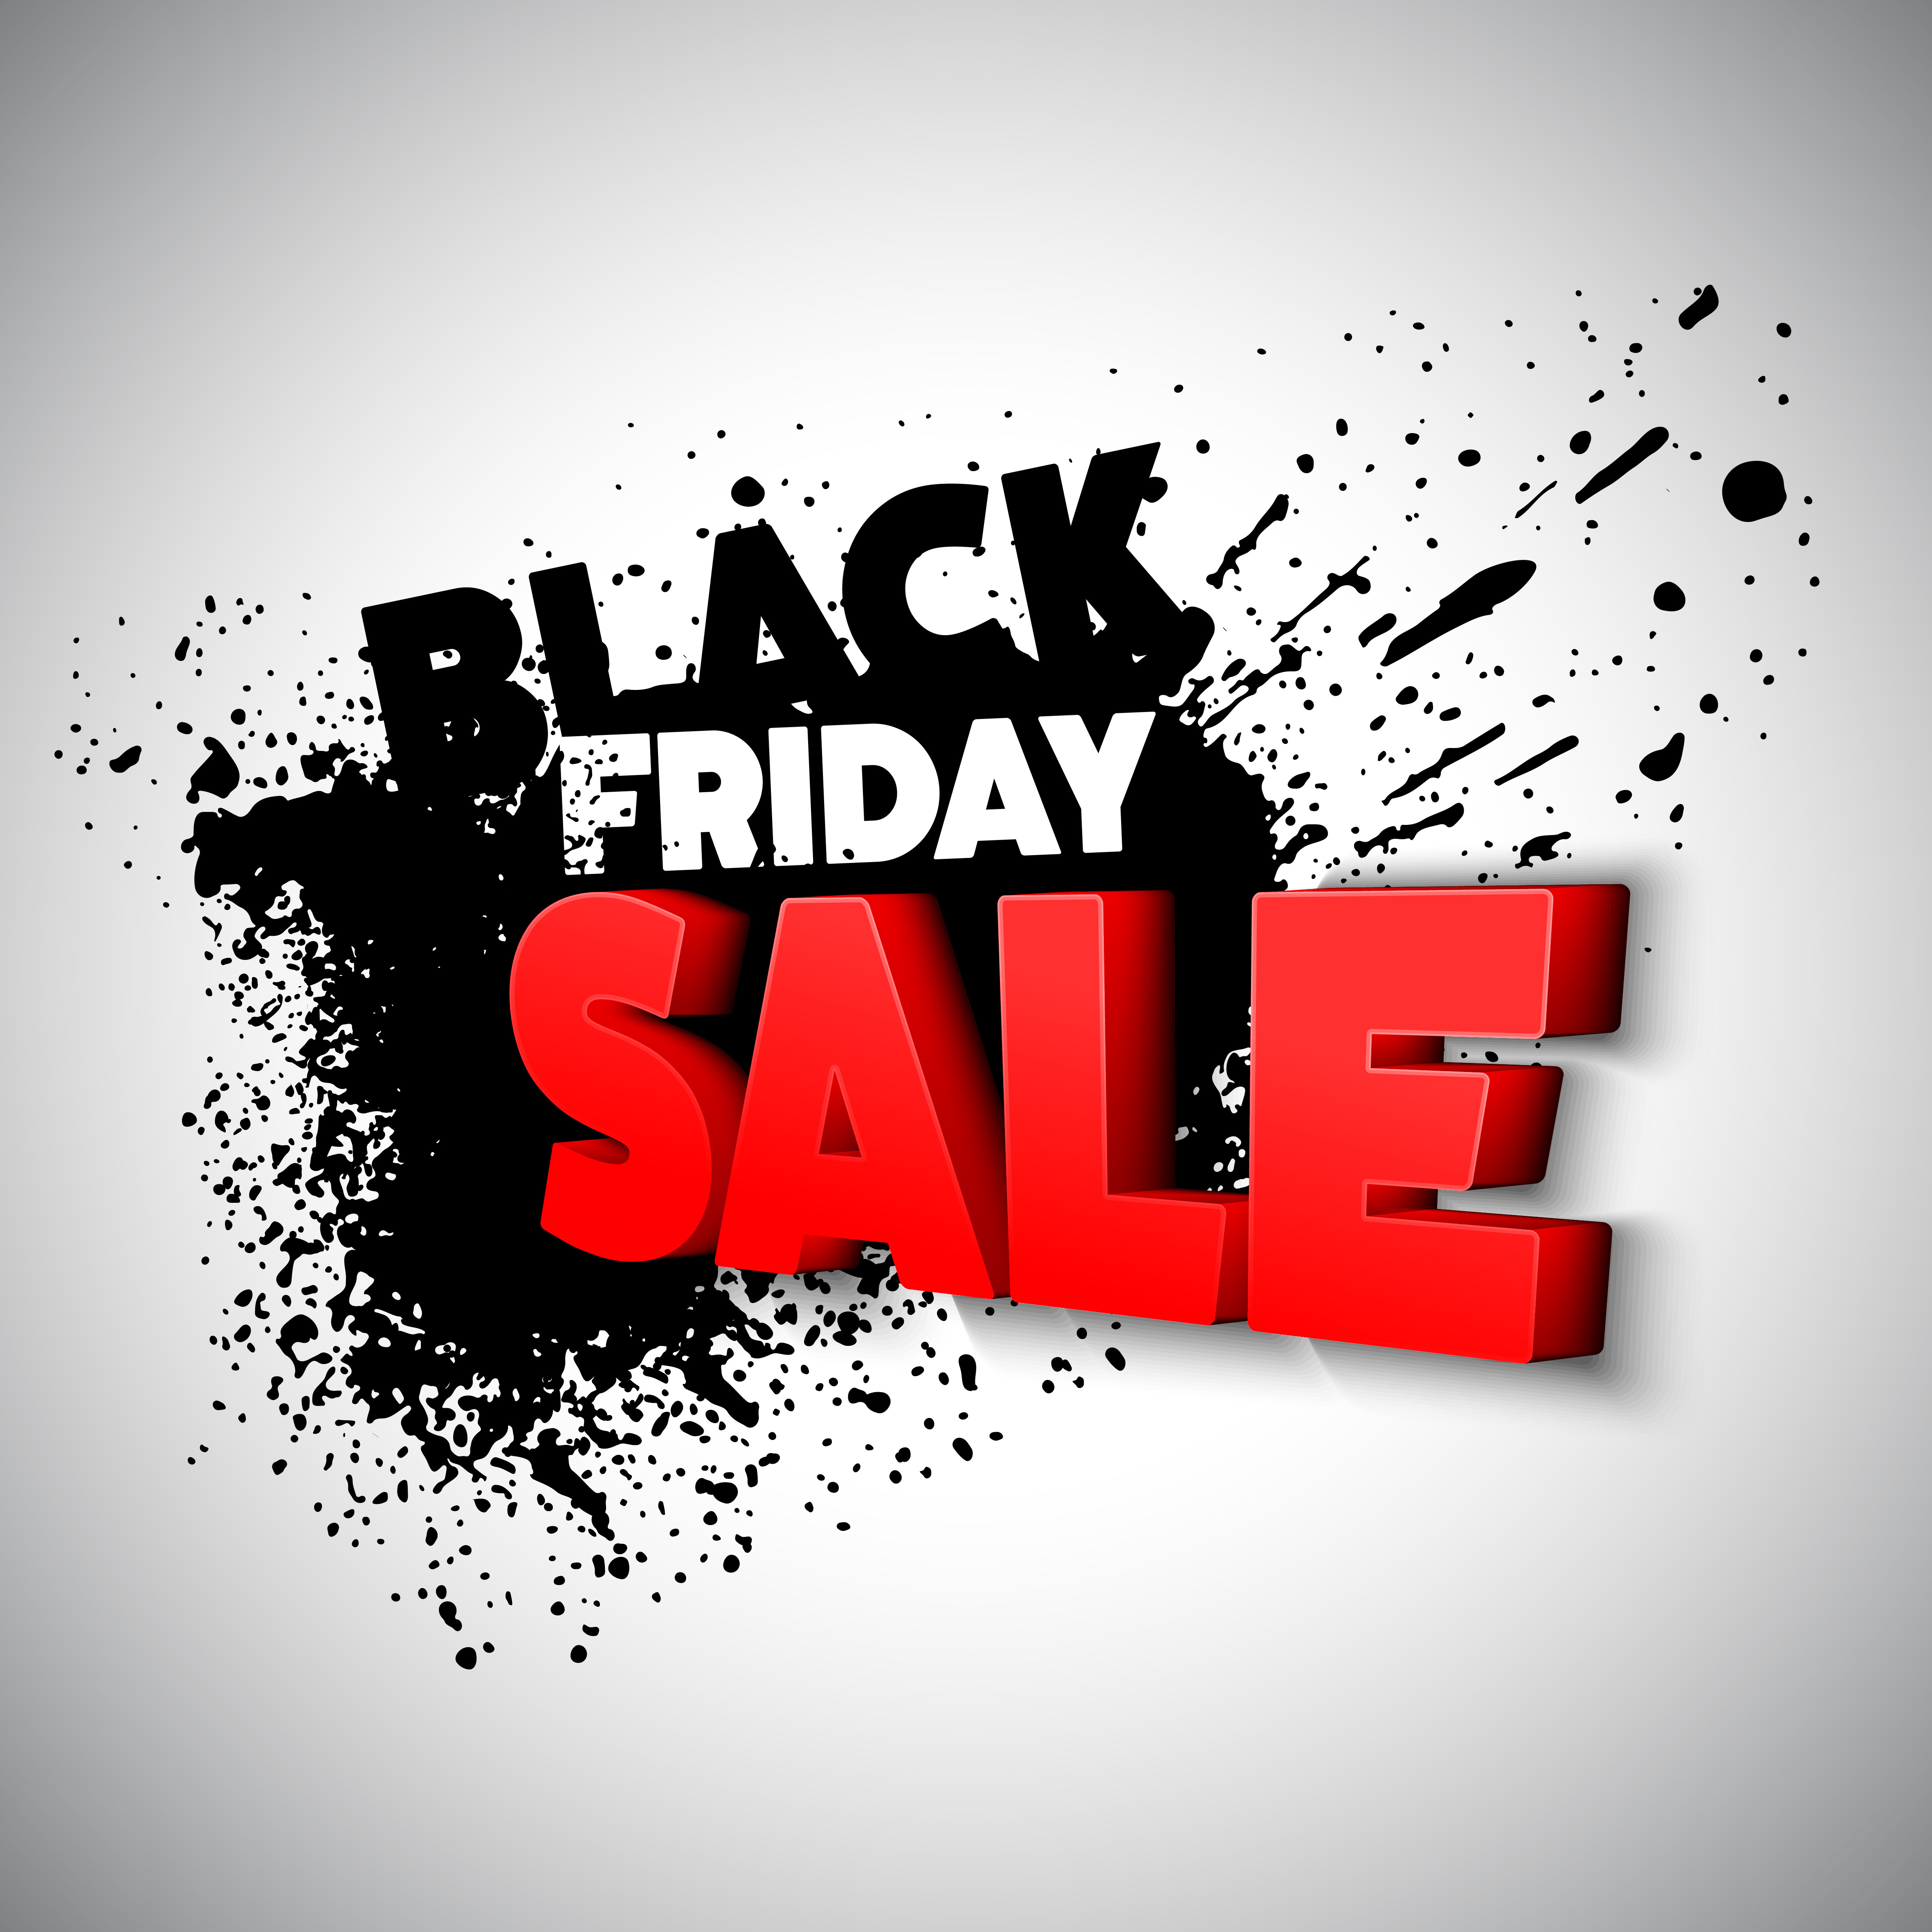 Best Black friday sale poster Wallpapers 8 Images 4724x4724